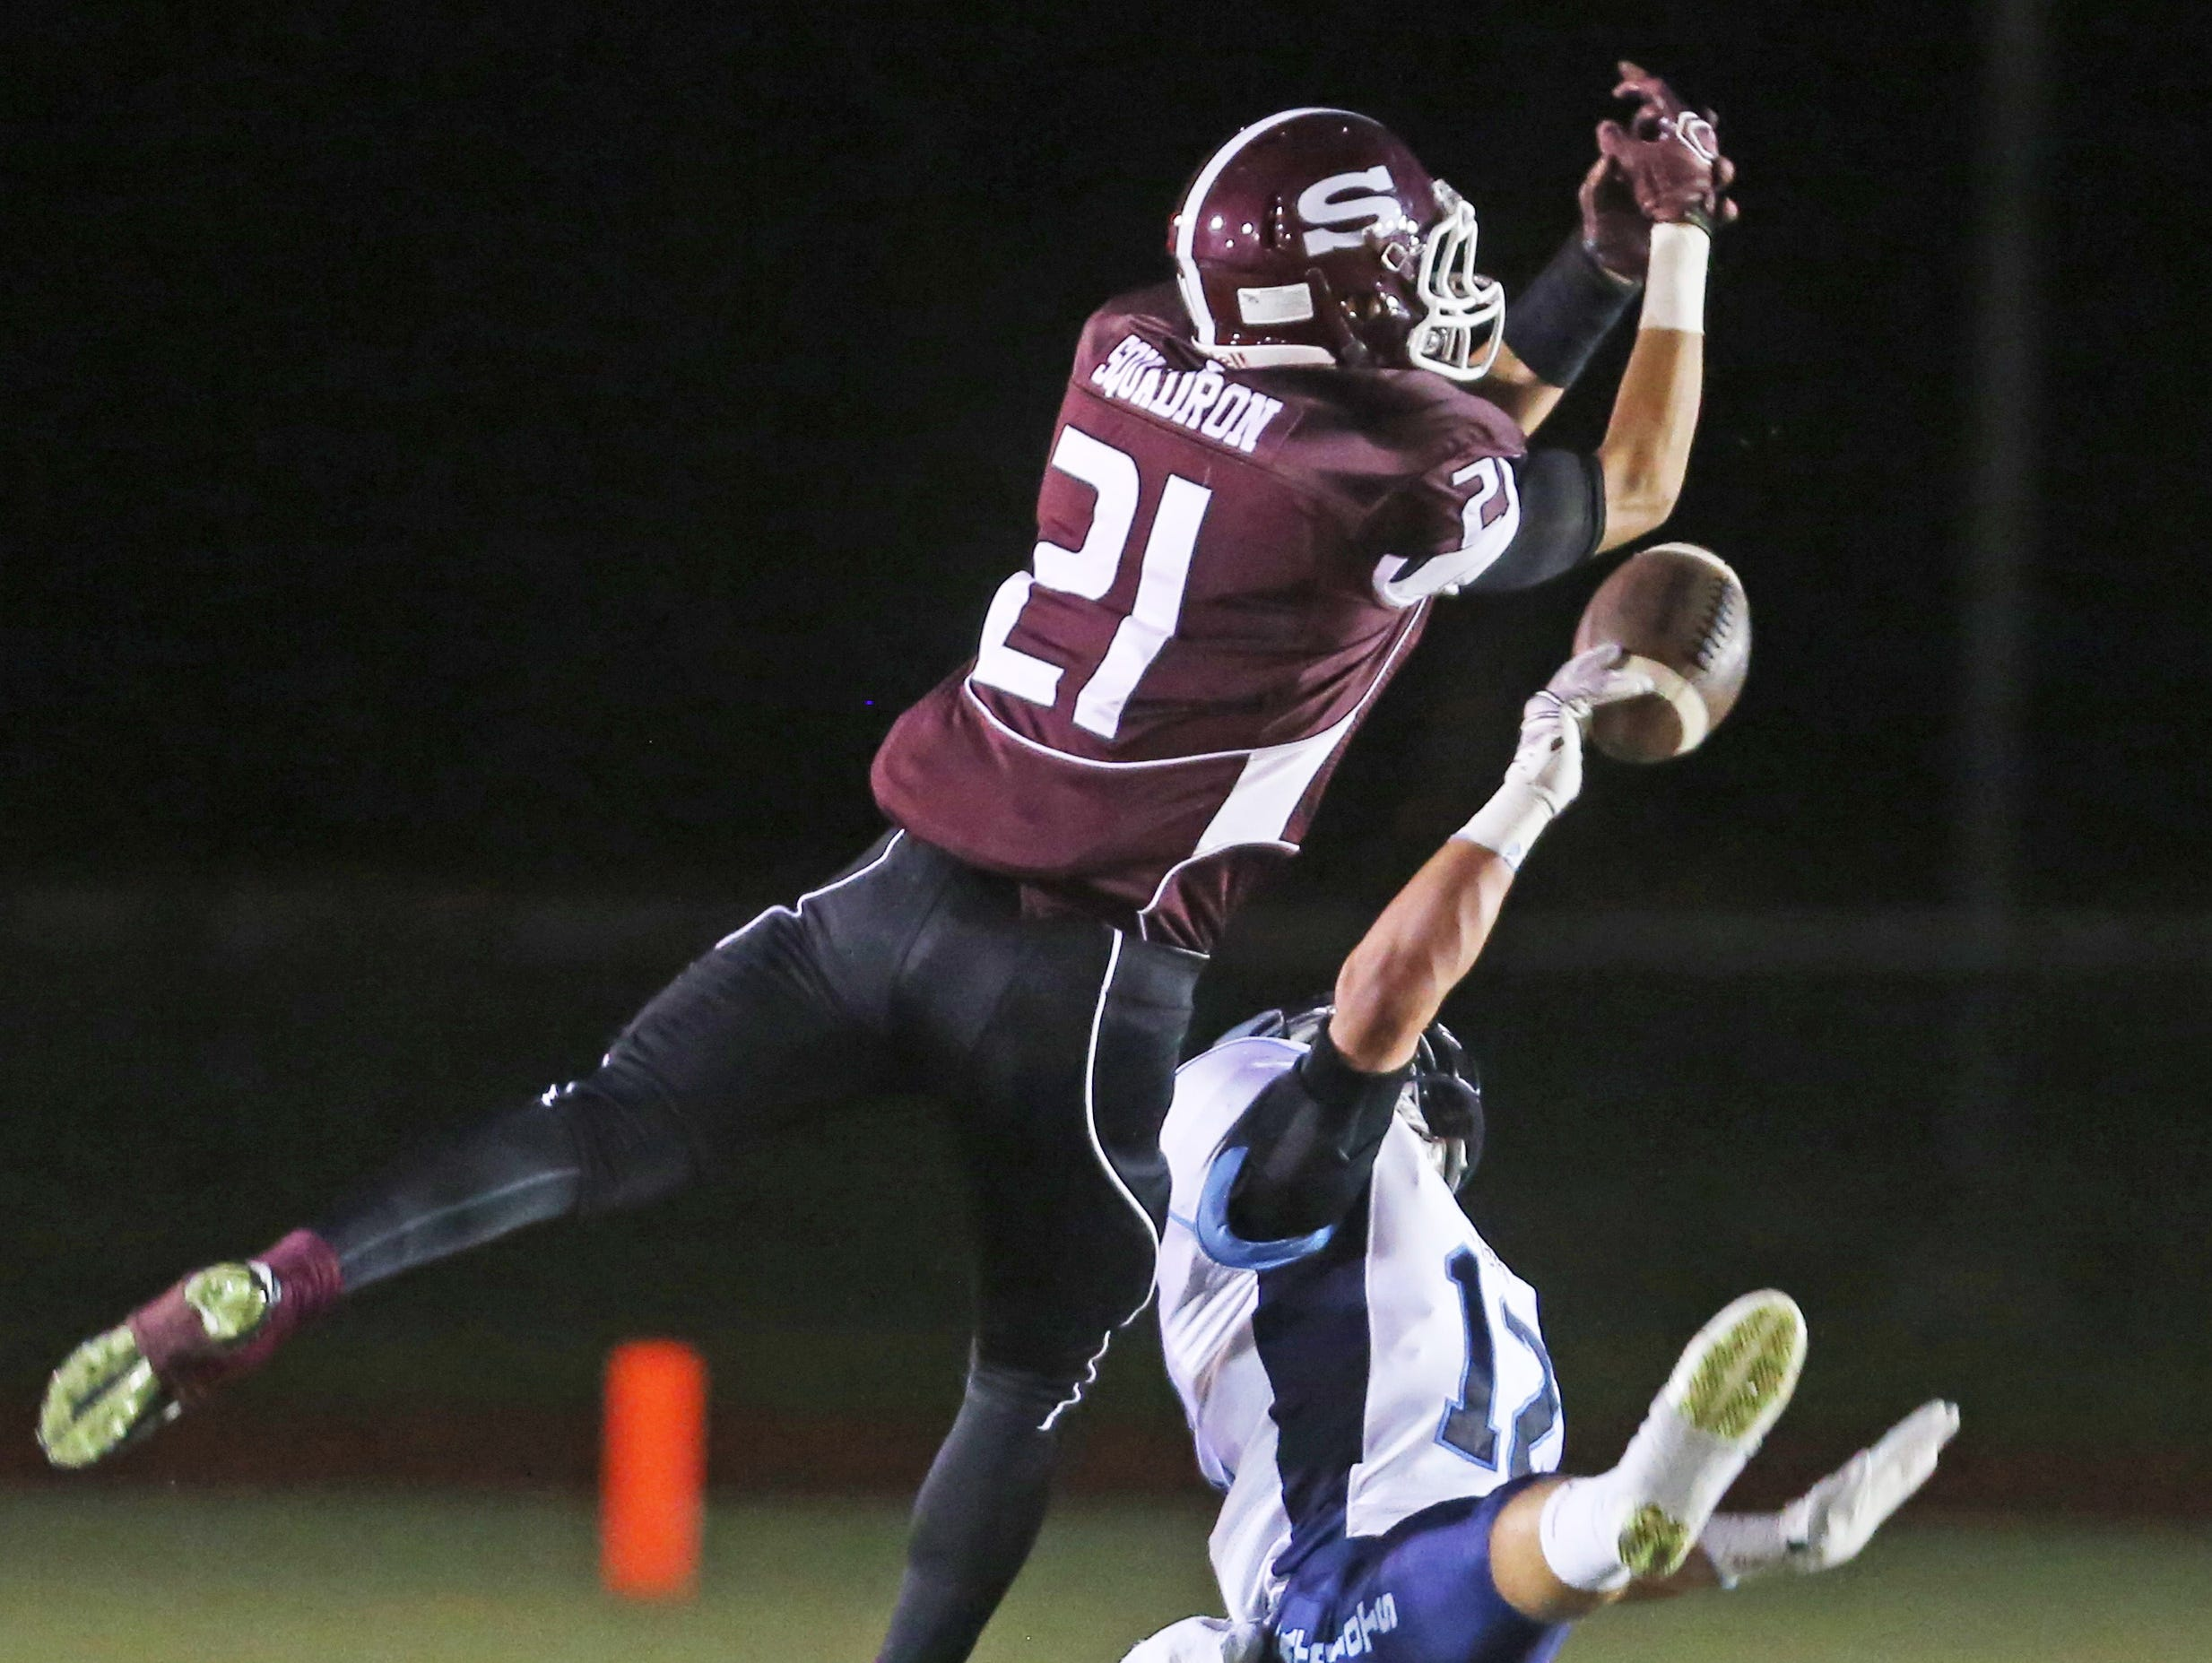 Jason Eisner of John Jay East Fishkill breaks up a pass intended for Scarsdale's Sam Squadron during a varsity football game at Scarsdale High School Sept. 25, 2015.